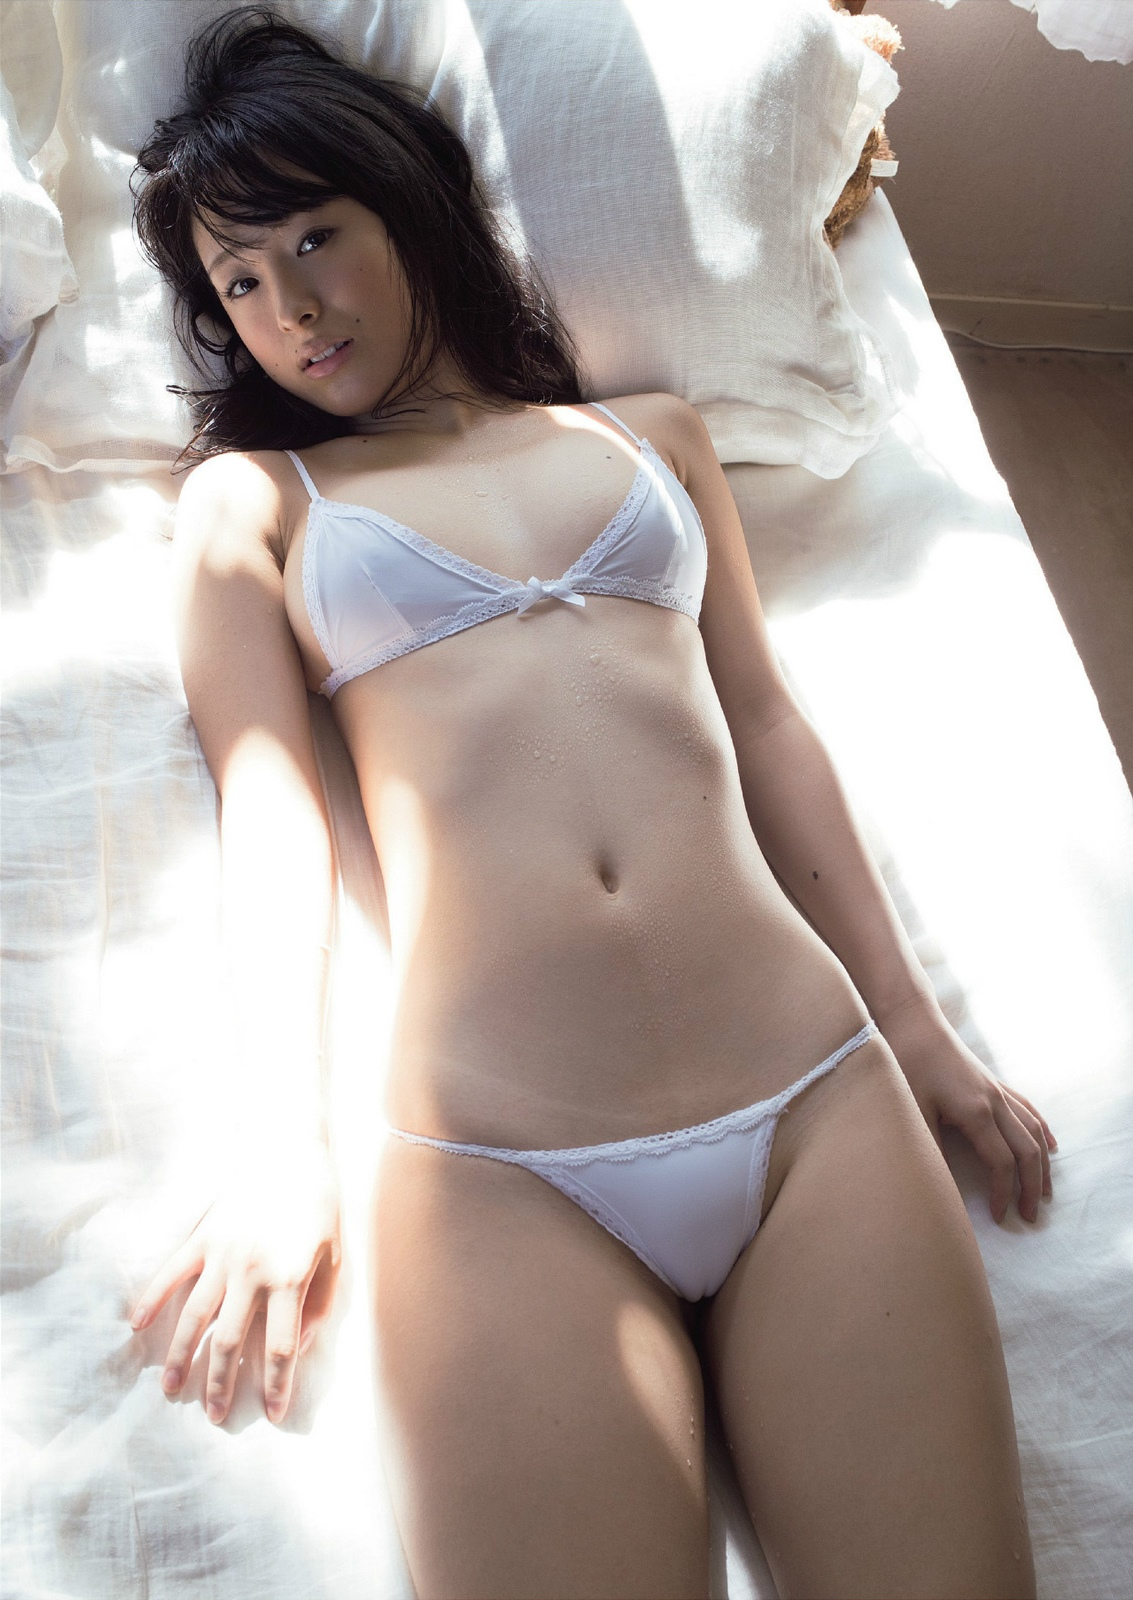 cool Japanese girl in sexy pose